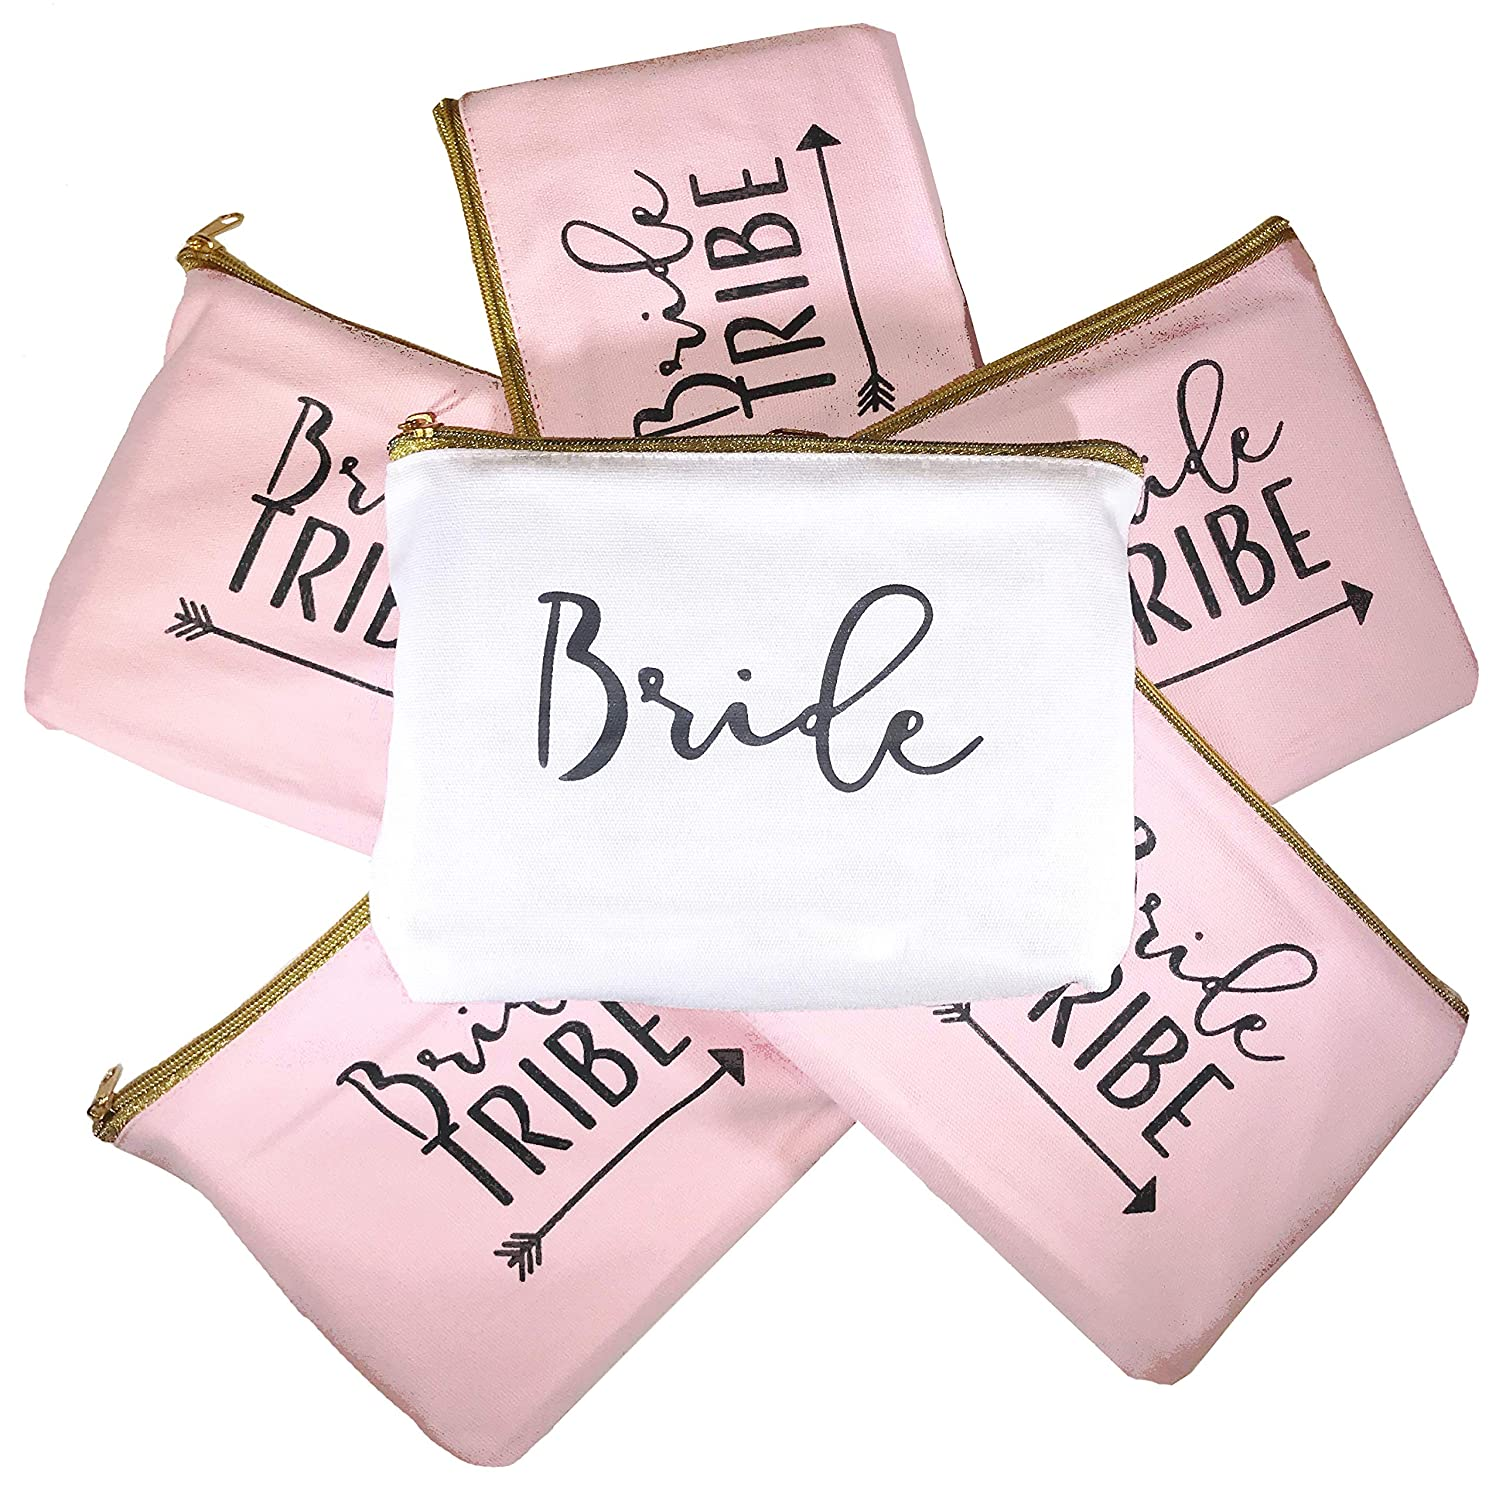 6 Piece Set | Bride Tribe Canvas Cosmetic Makeup Clutch Gifts Bag for Bridesmaid Proposal Box & Bridesmaids Bachelorette Party Favors (Rose Gold)